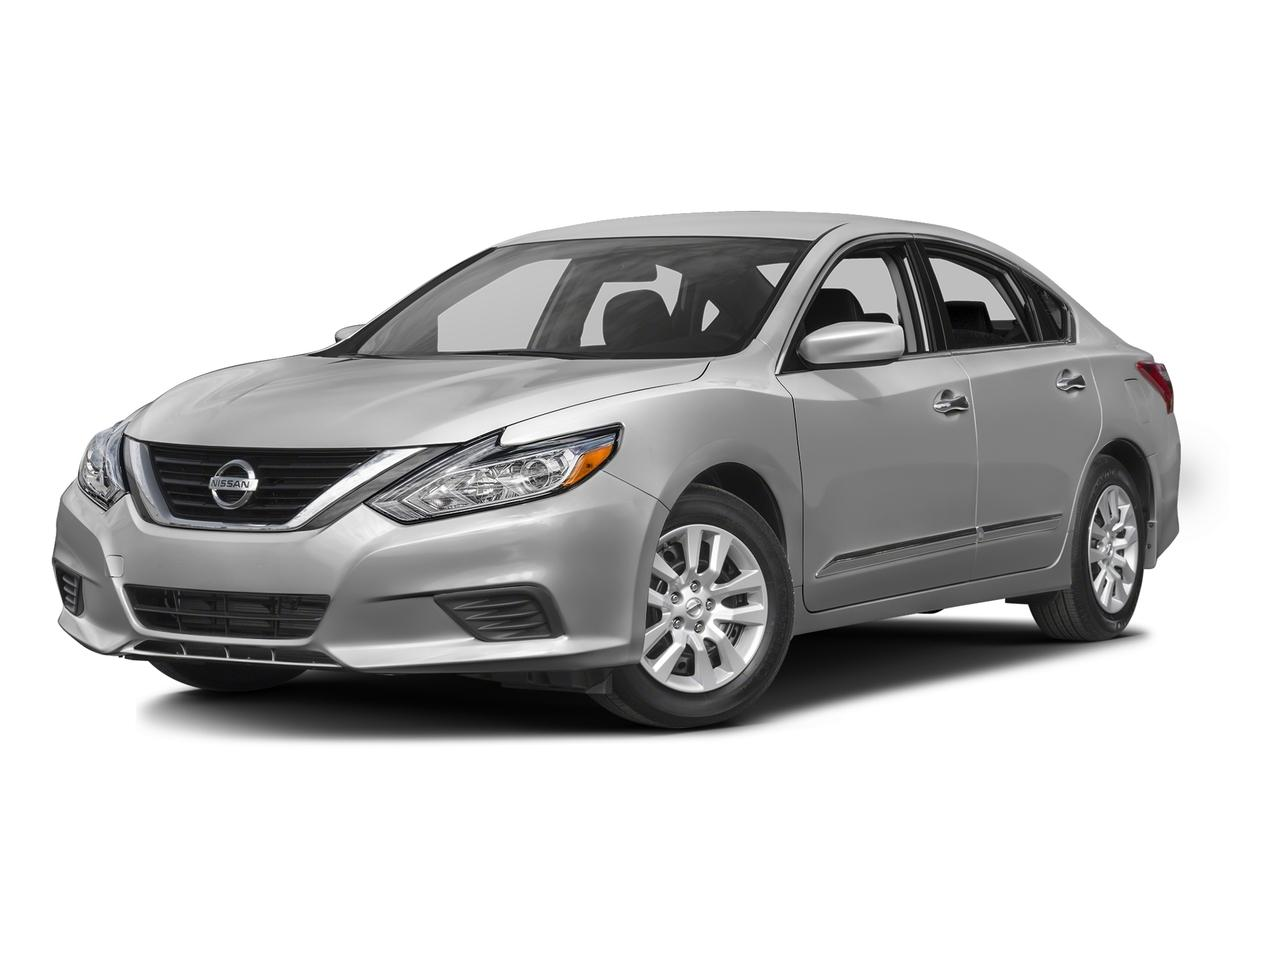 2016 Nissan Altima Vehicle Photo in San Antonio, TX 78257